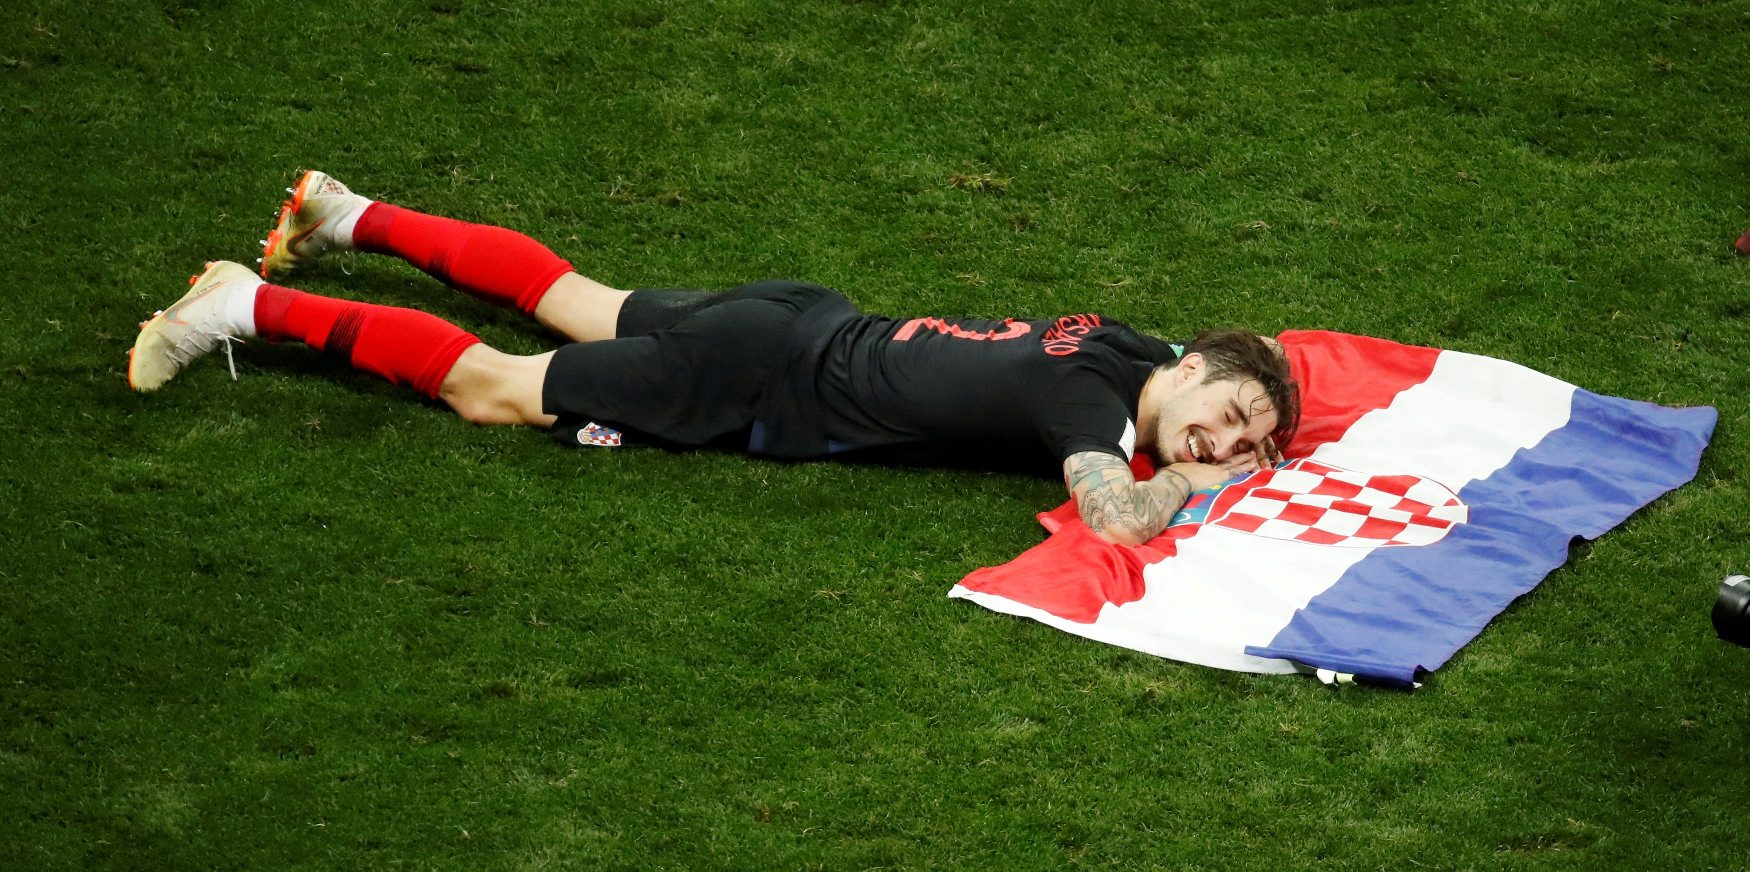 2018-07-11T211945Z_317012647_RC1B1A738100_RTRMADP_3_SOCCER-WORLDCUP-CRO-ENG